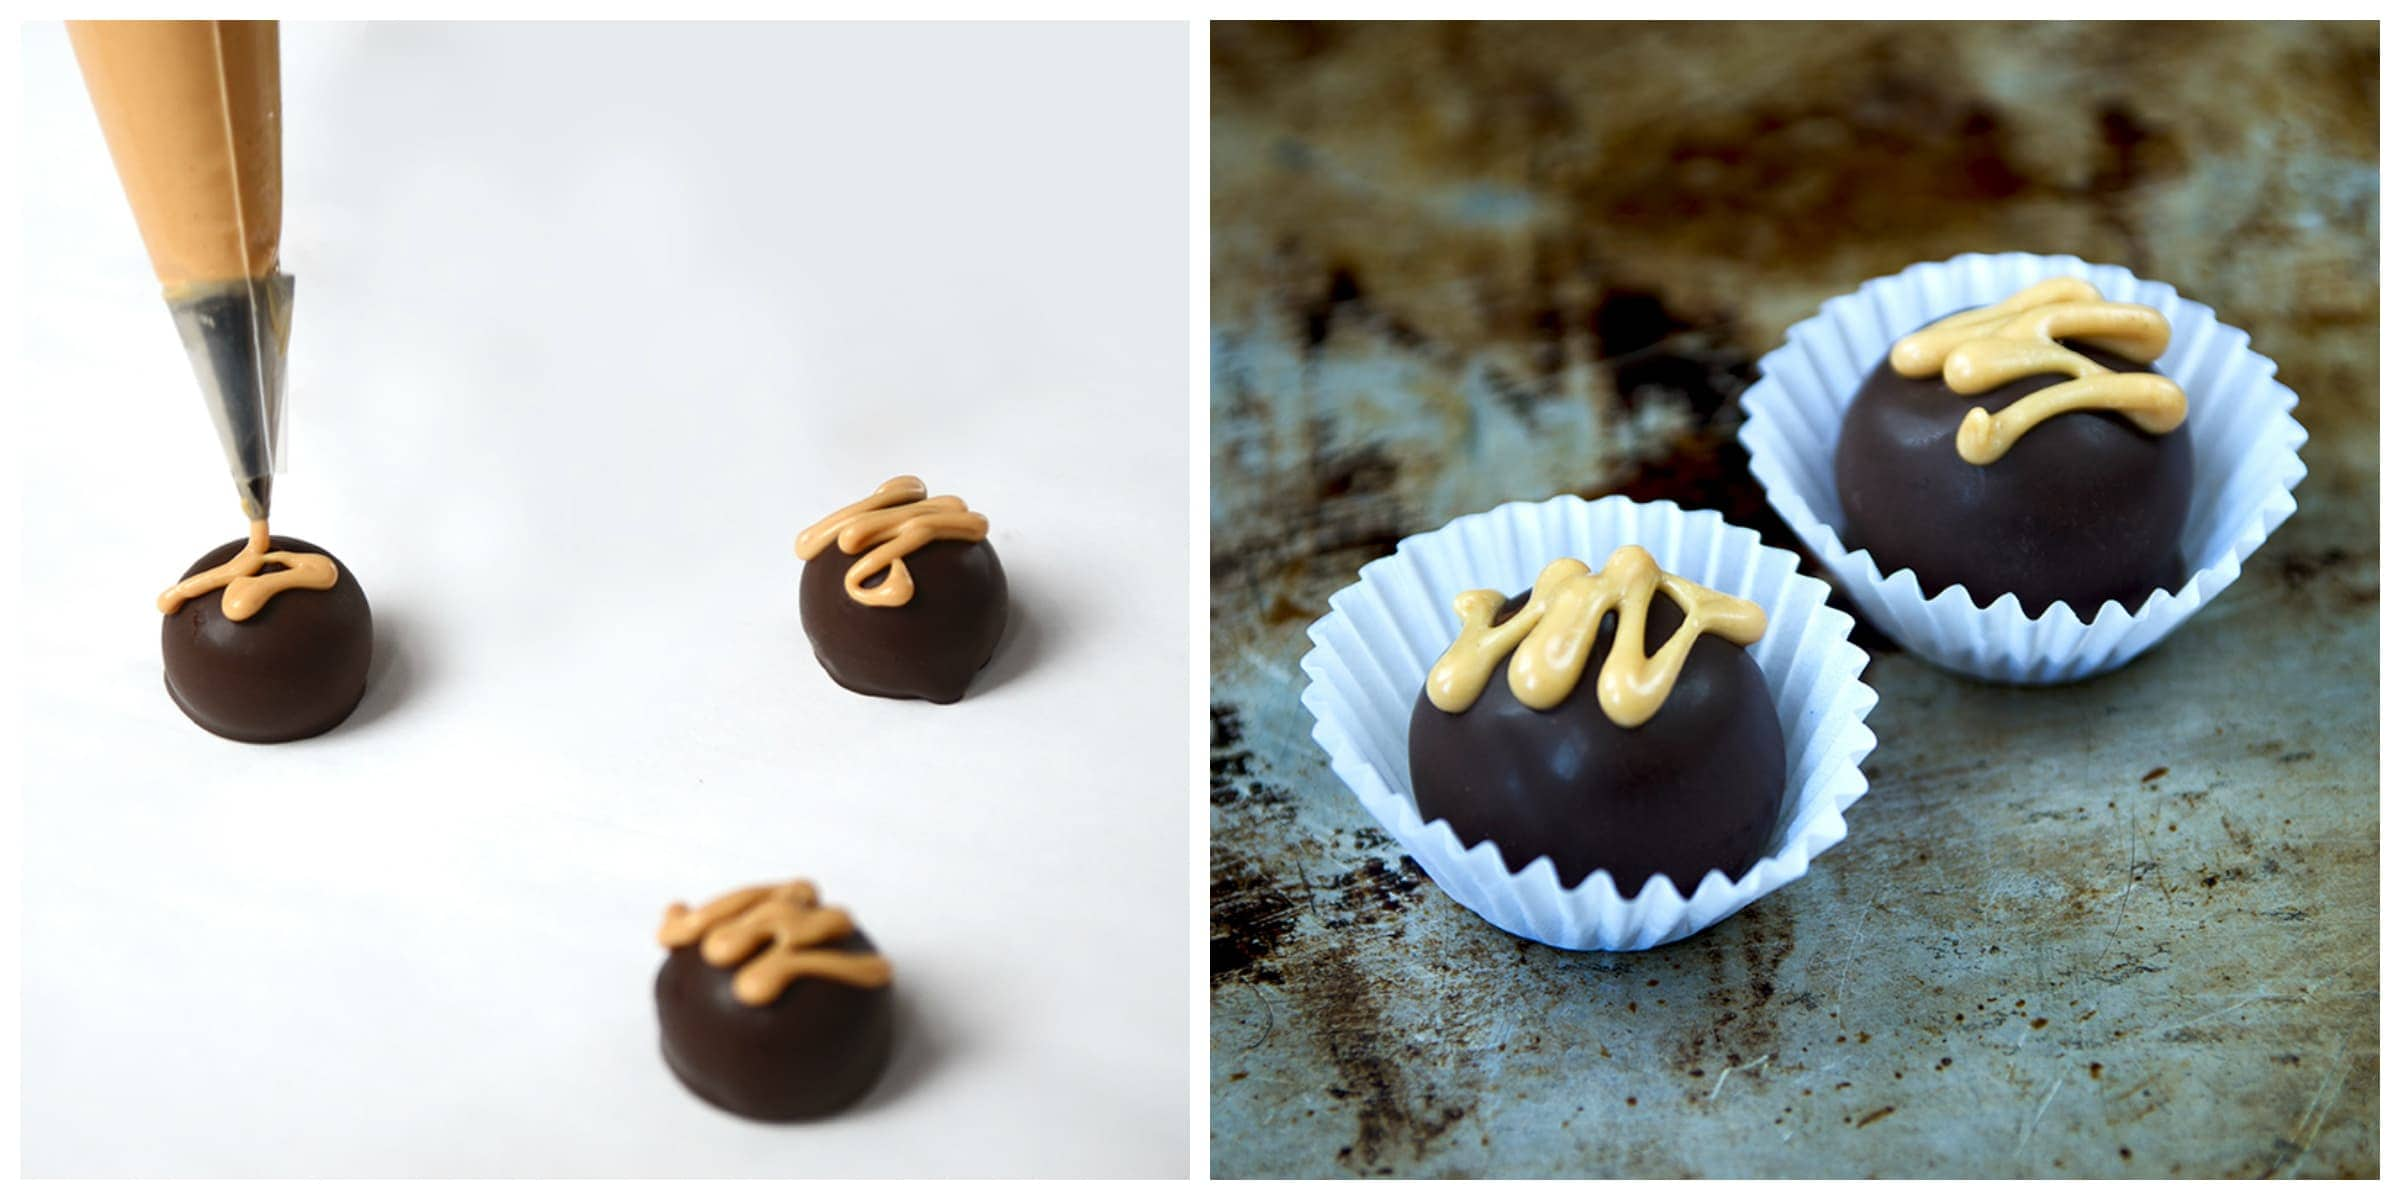 Peanut Butter Honey Dark Chocolate Truffles are a decadent way to celebrate #Chocotoberfest! Filled with a creamy peanut butter and honey filling, these candies are sure to please a crowd. | vintagekitty.com